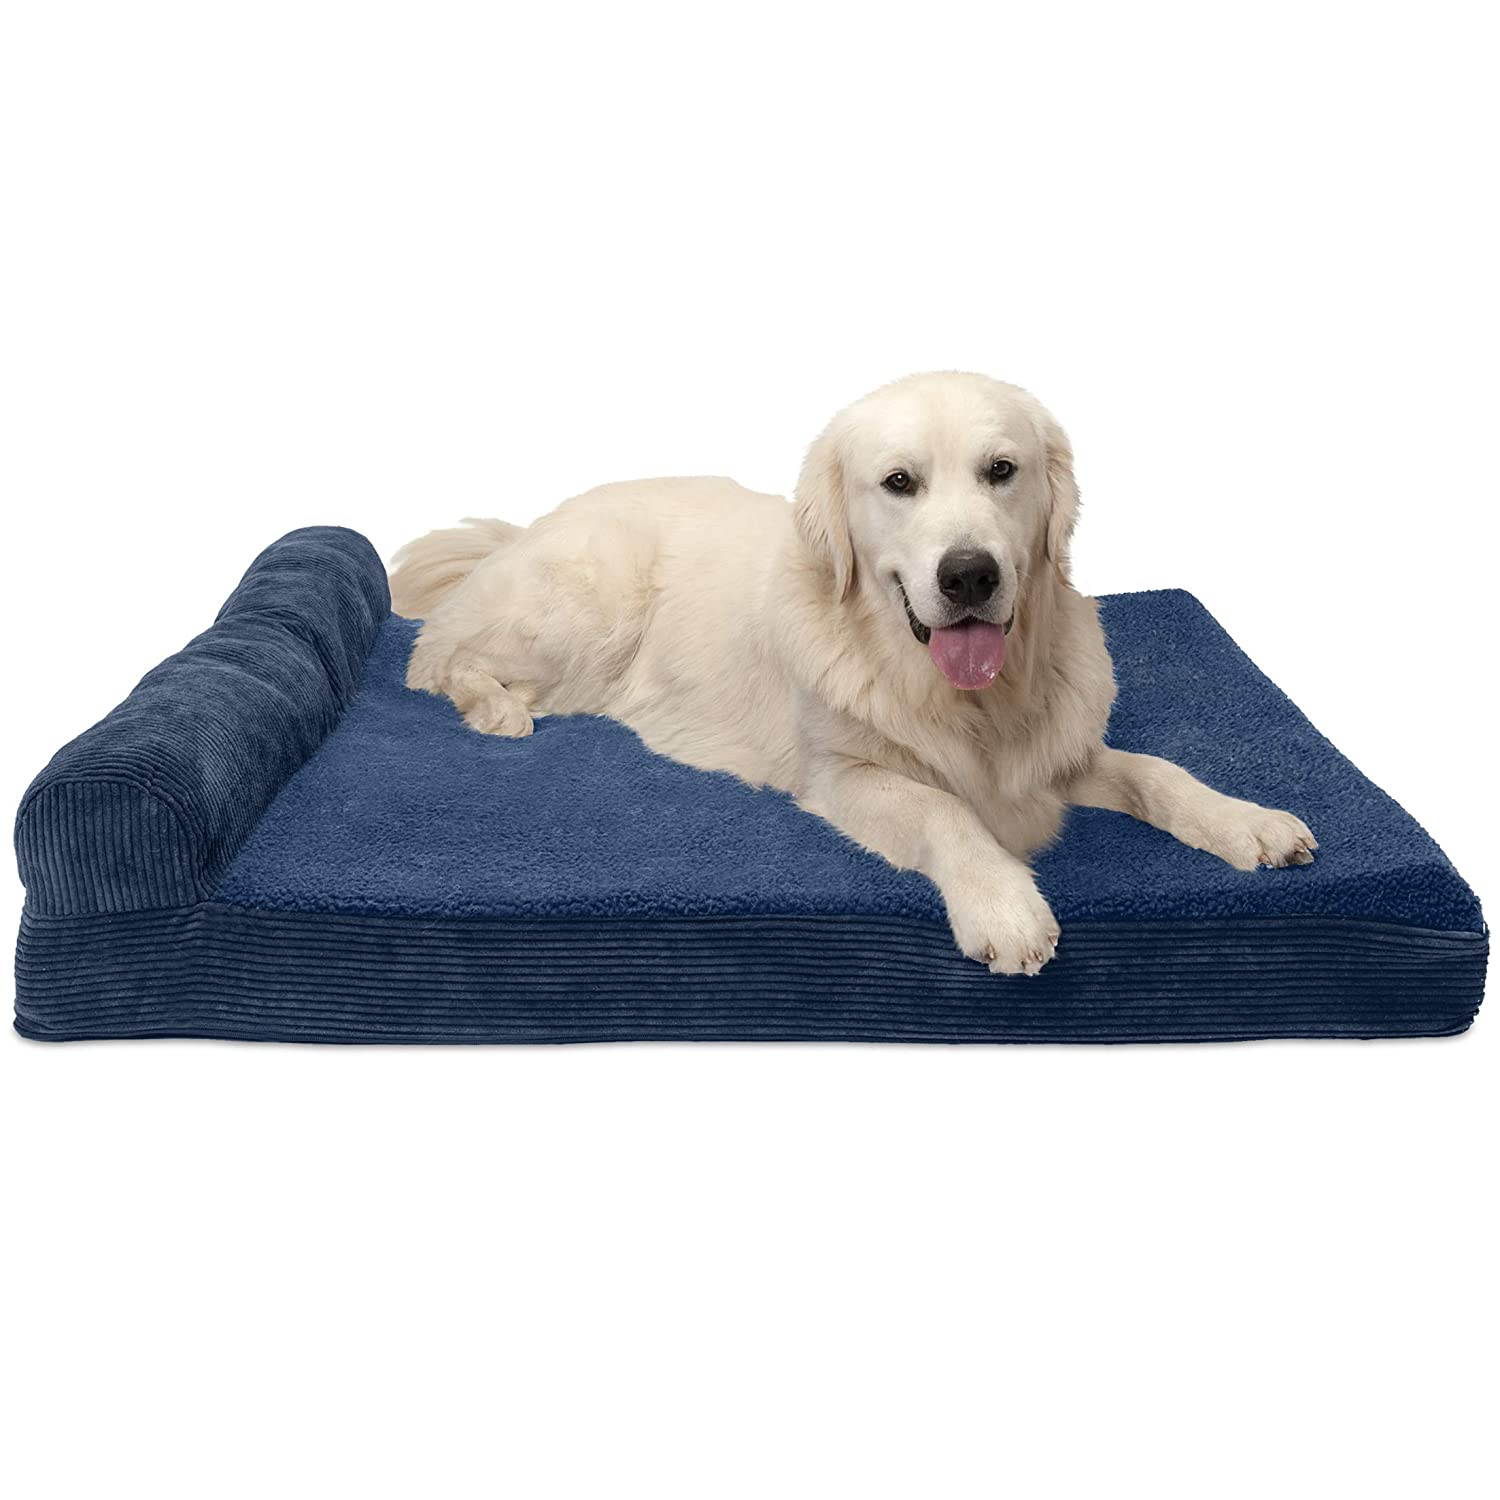 Furhaven Pet Dog Bed   Cooling Gel Memory Foam Orthopedic Faux Fleece & Corduroy Lounge Pet Bed for Dogs & Cats, Navy, Jumbo